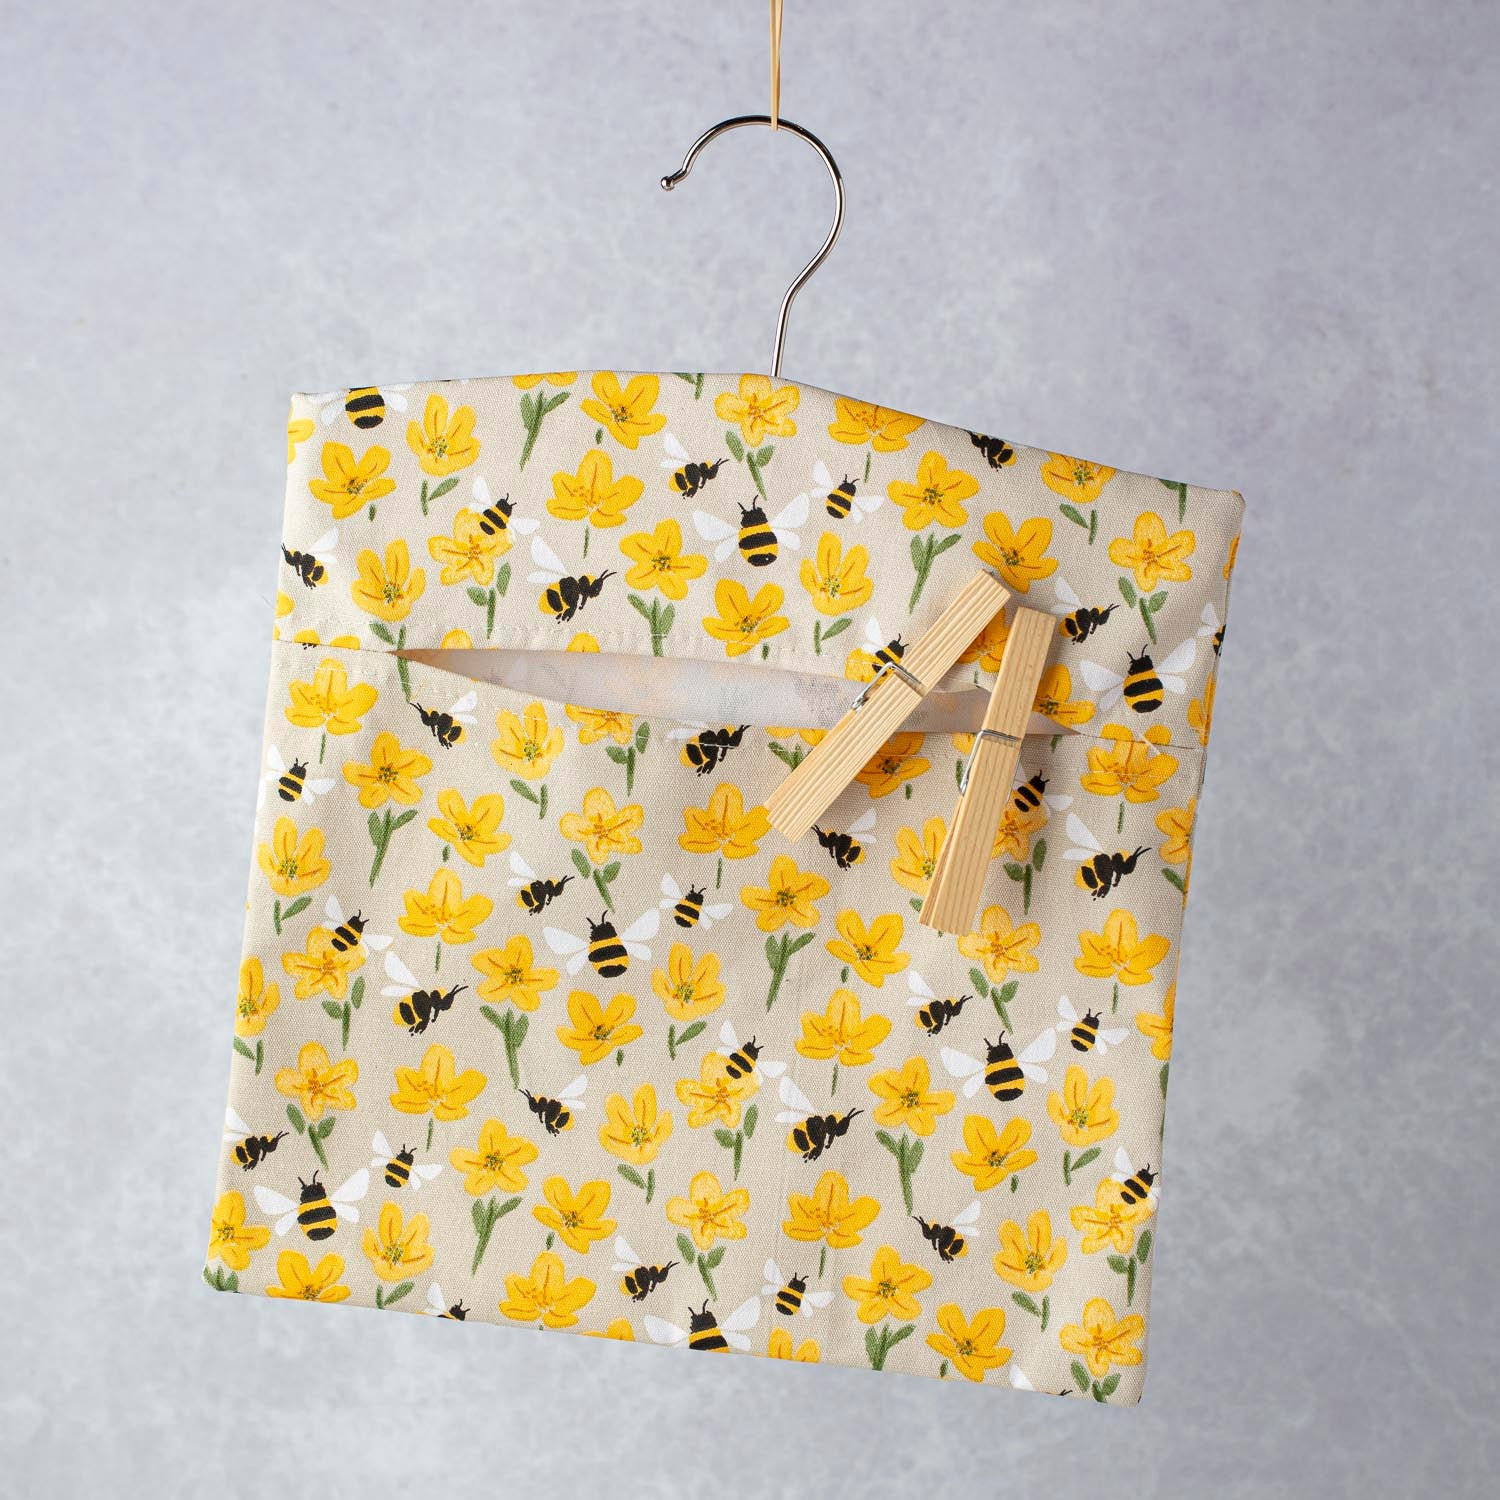 Fabric Peg Bag w Buttercup/Bee